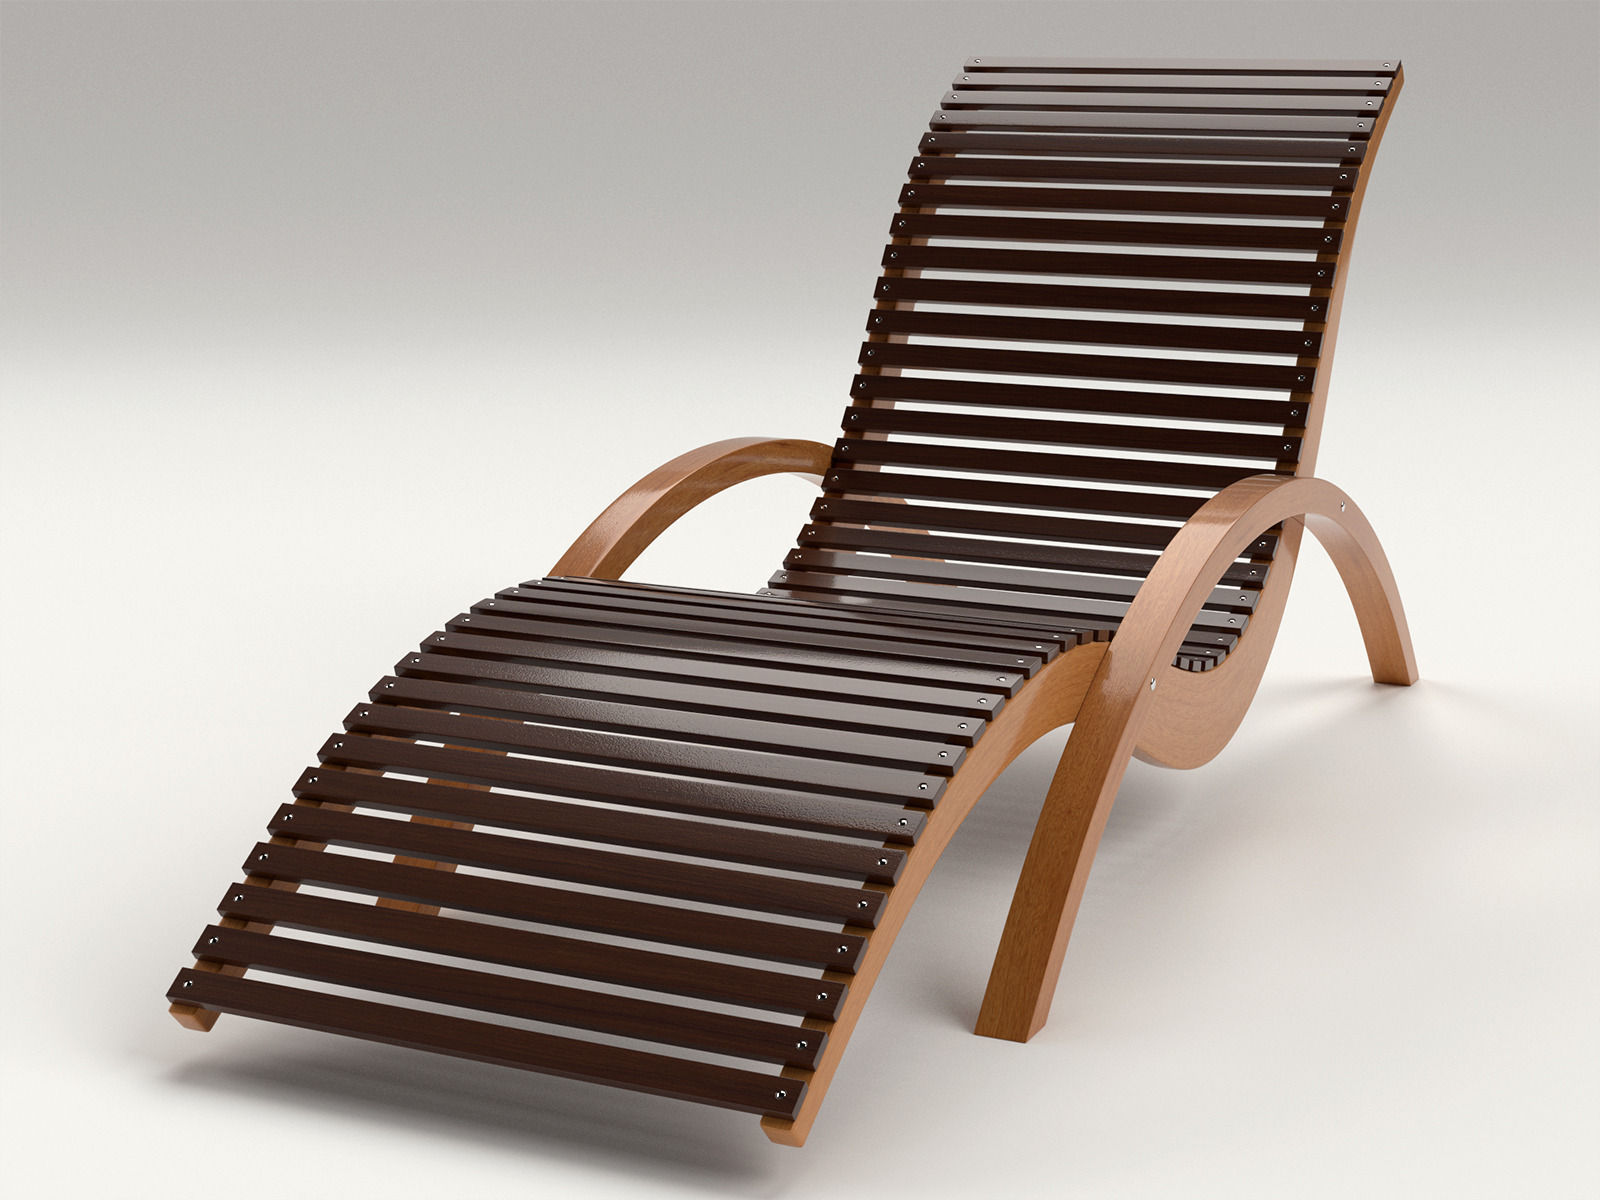 ... Lounge Chair Outdoor Wood Patio Deck 3d Model Obj Dxf Mtl 2 ...